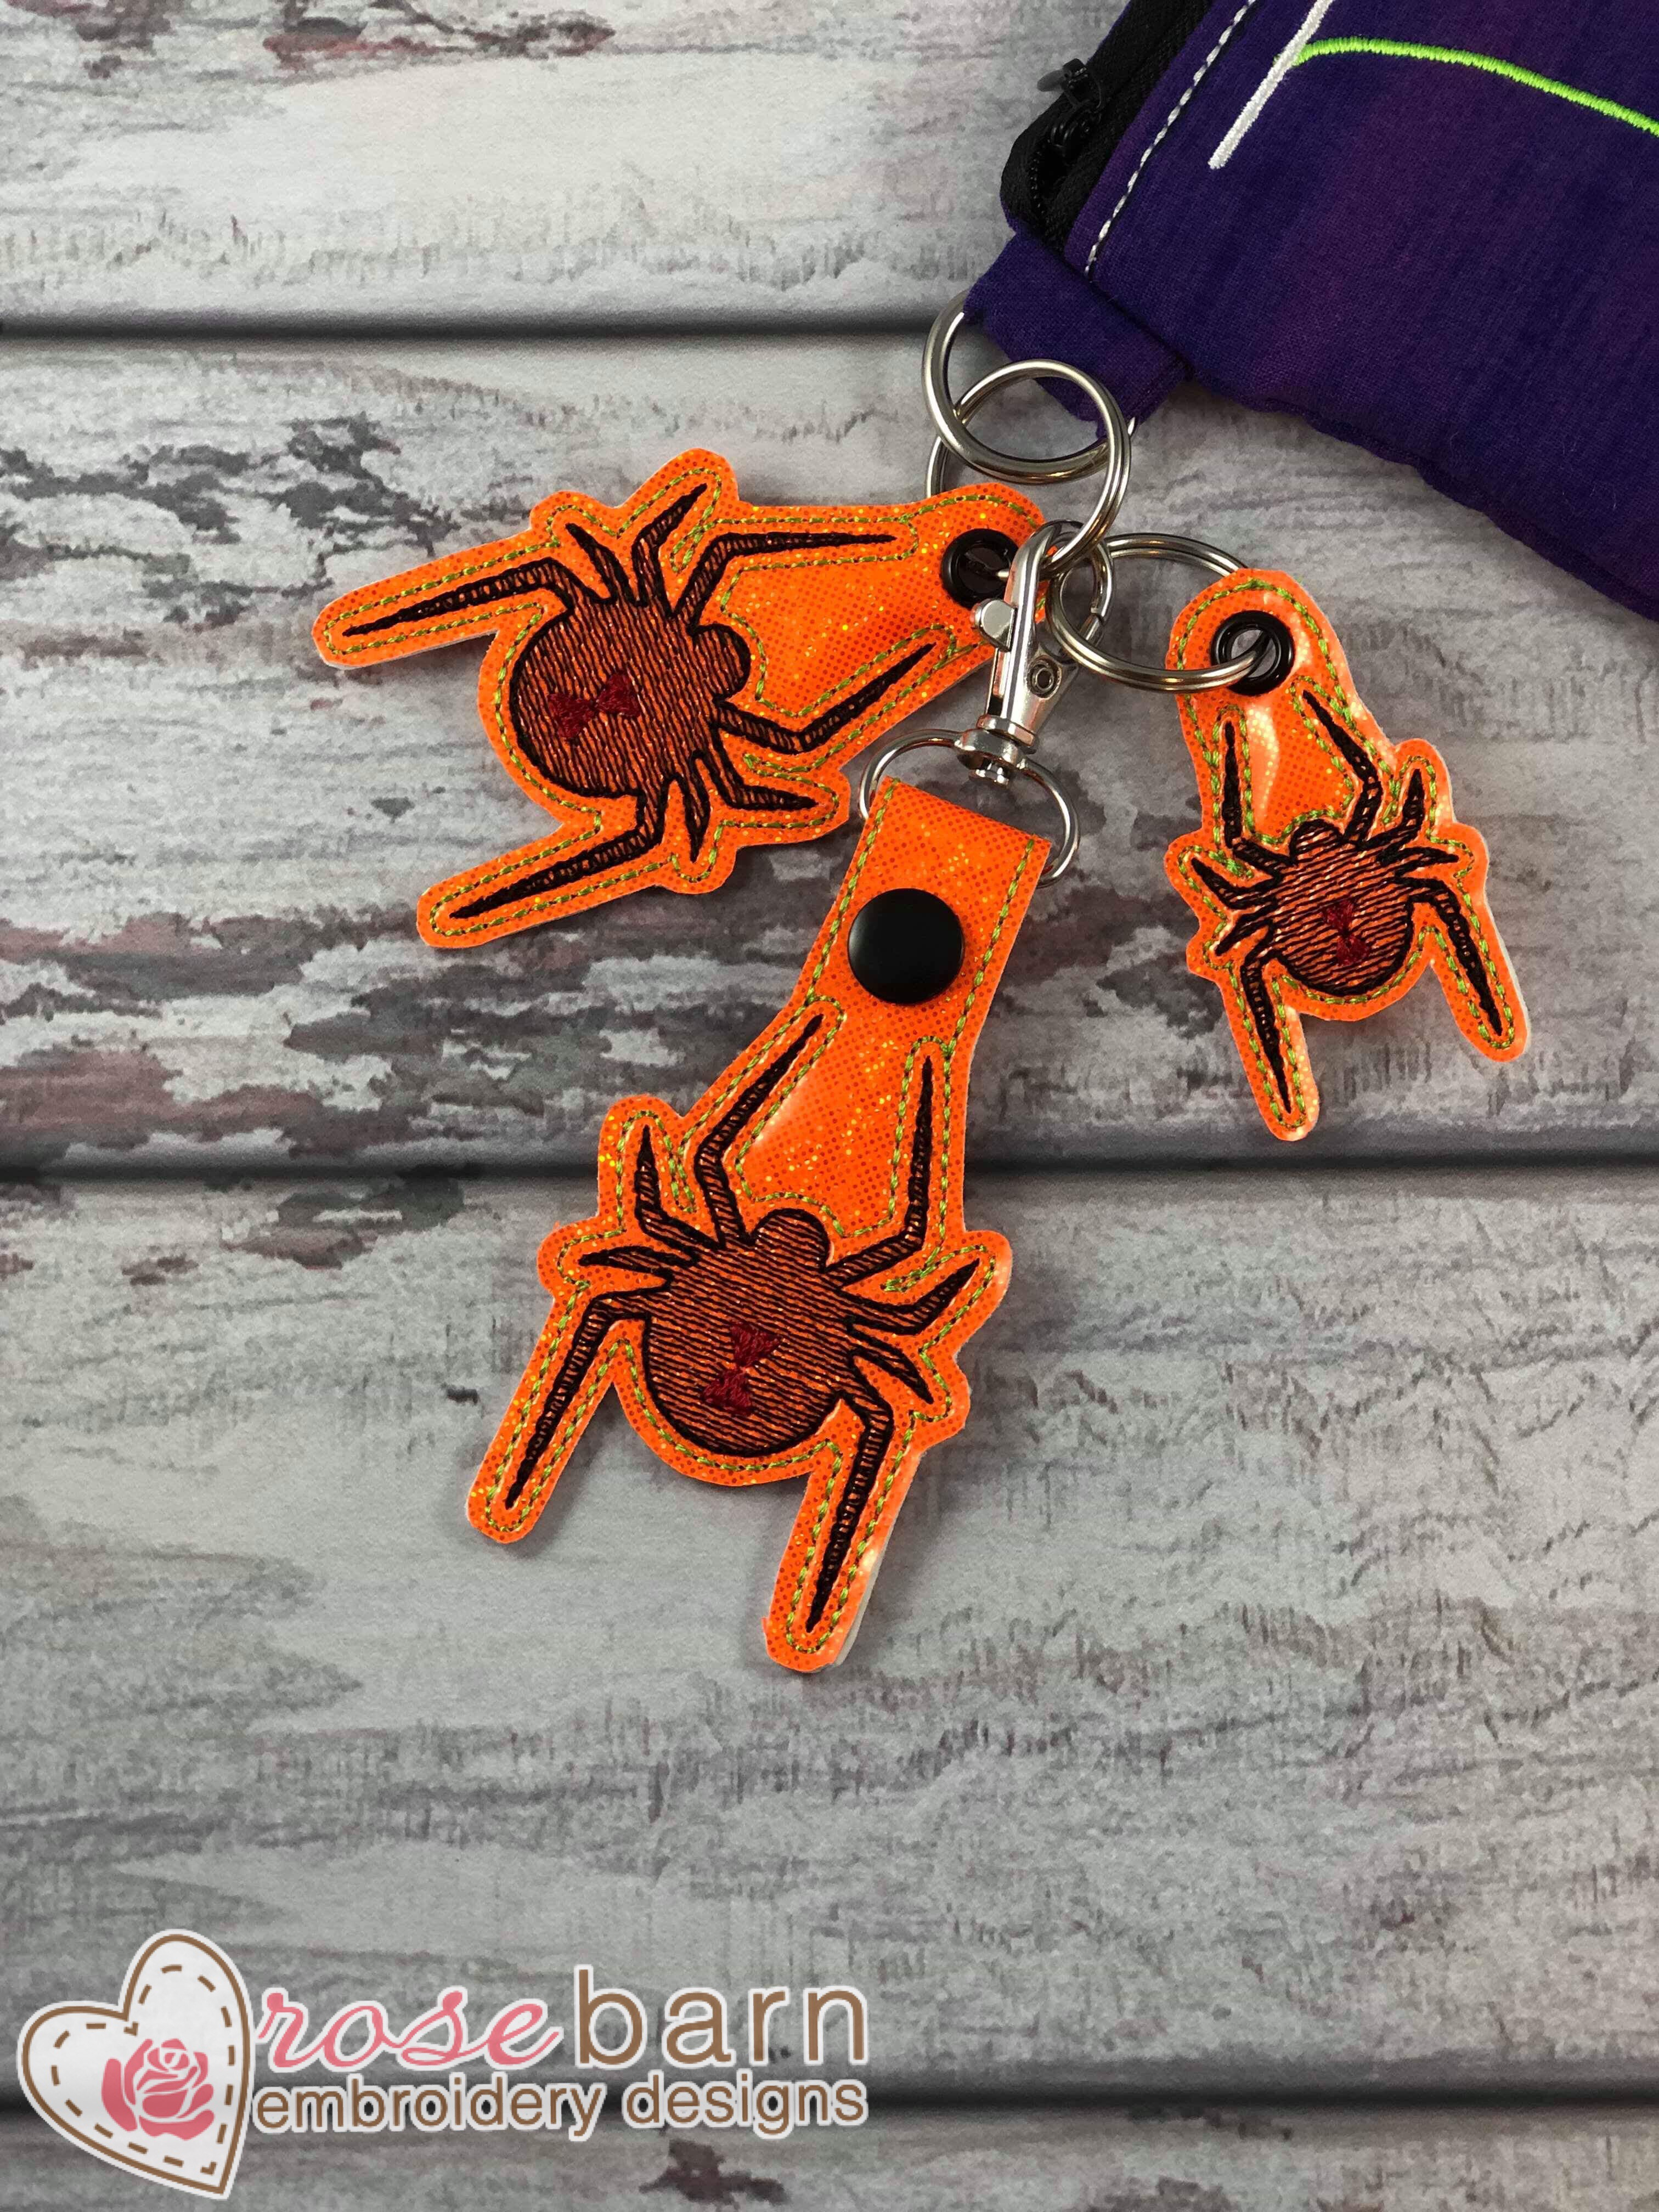 Spider Key Fob and Pull